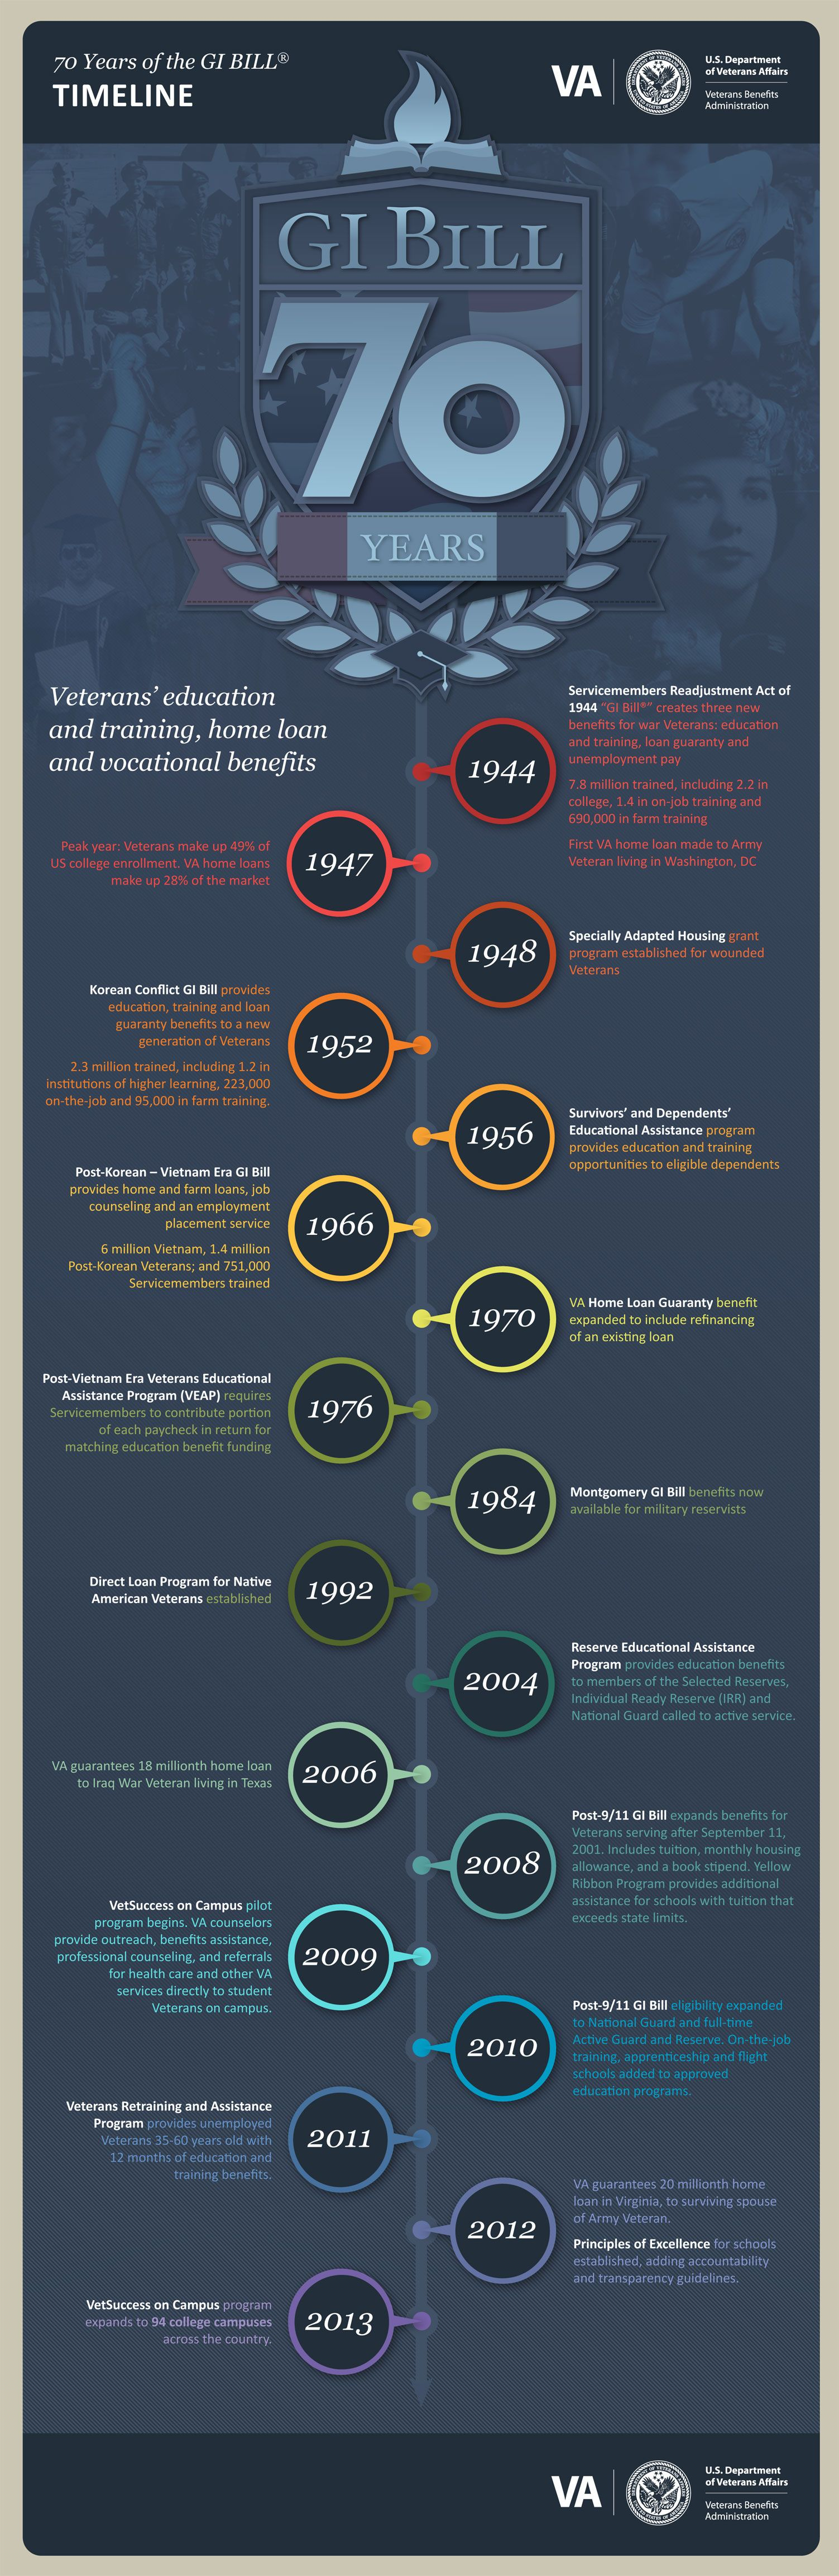 70th Gi Bill Anniversary Infographic Timeline 70 Years Of The Gi